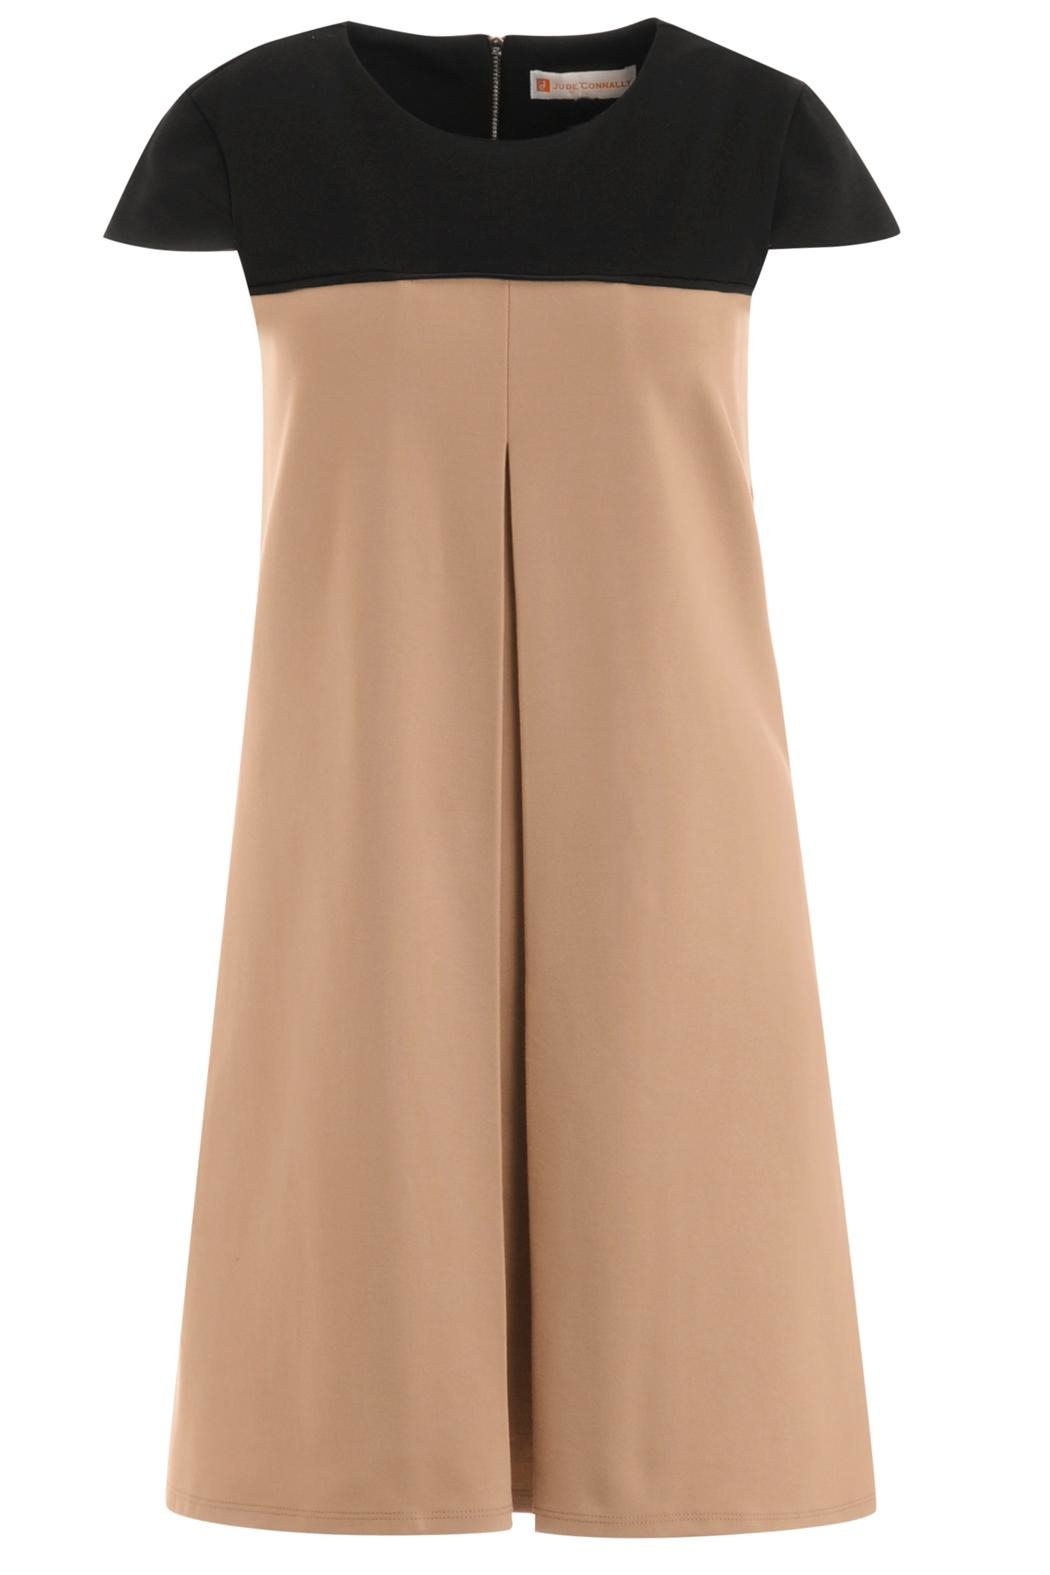 Jude Connally Polly-Ponte Swing Dress - Side Cropped Image